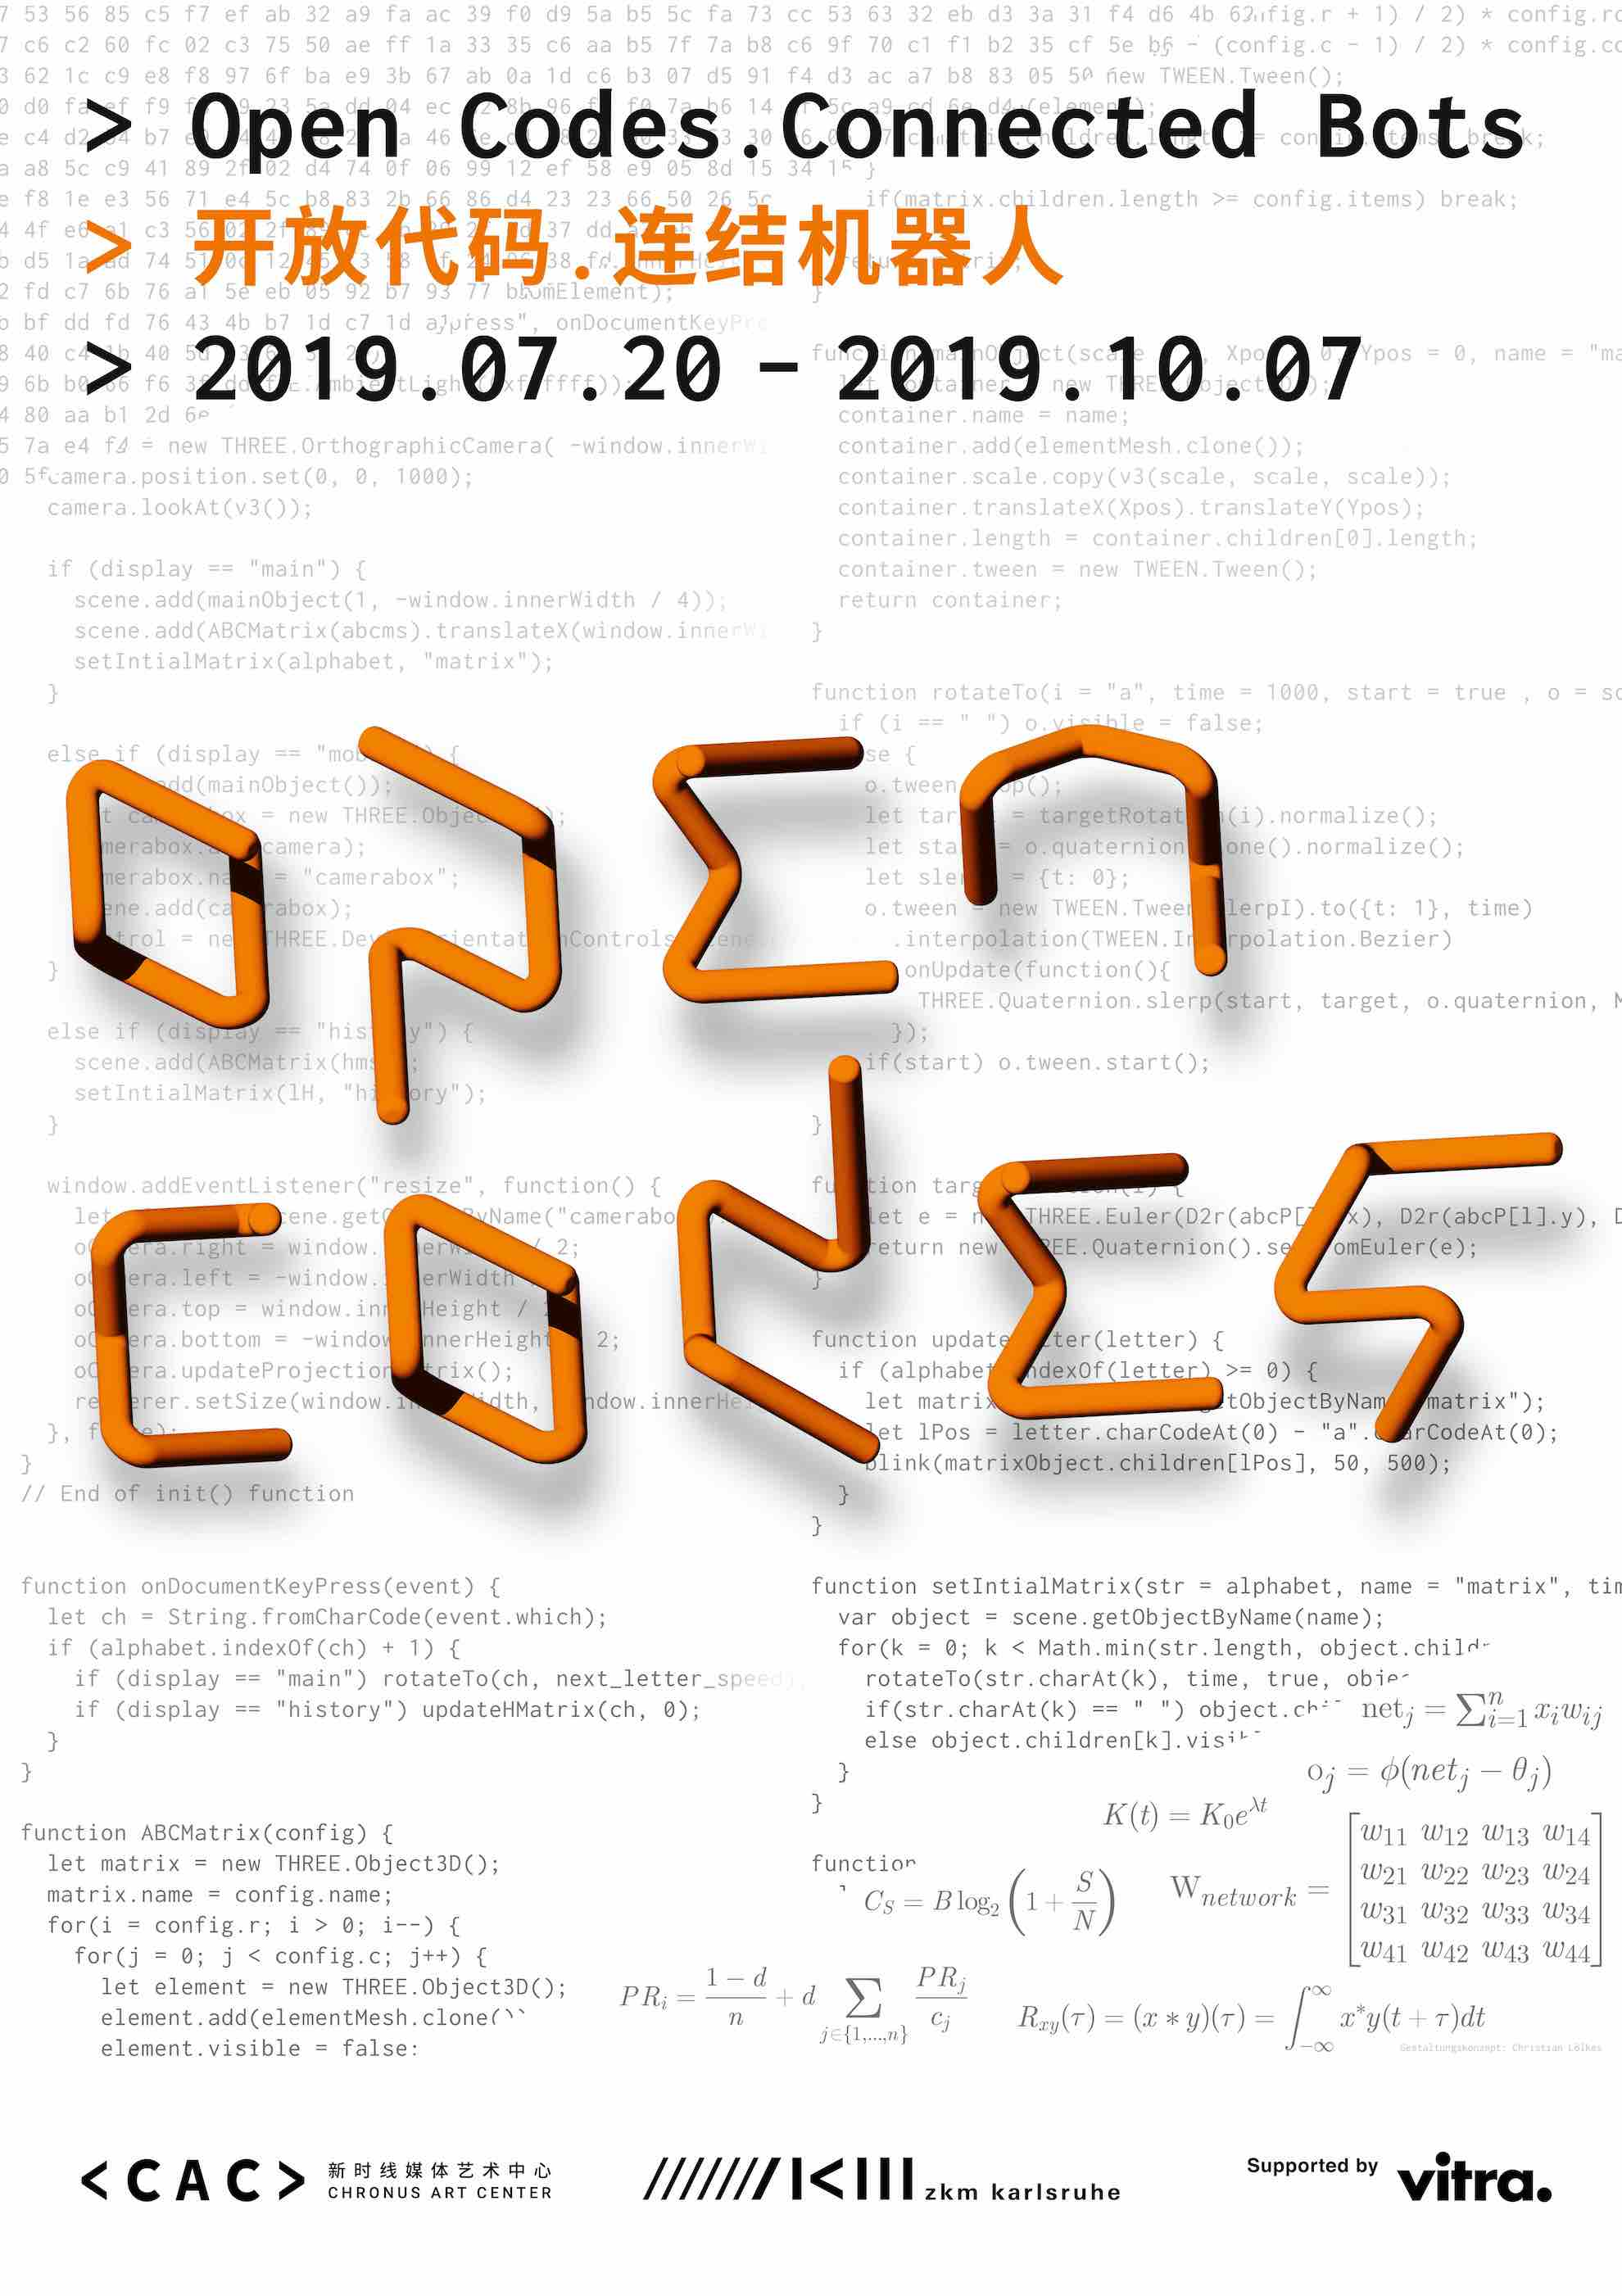 Open Codes. Connected Bots